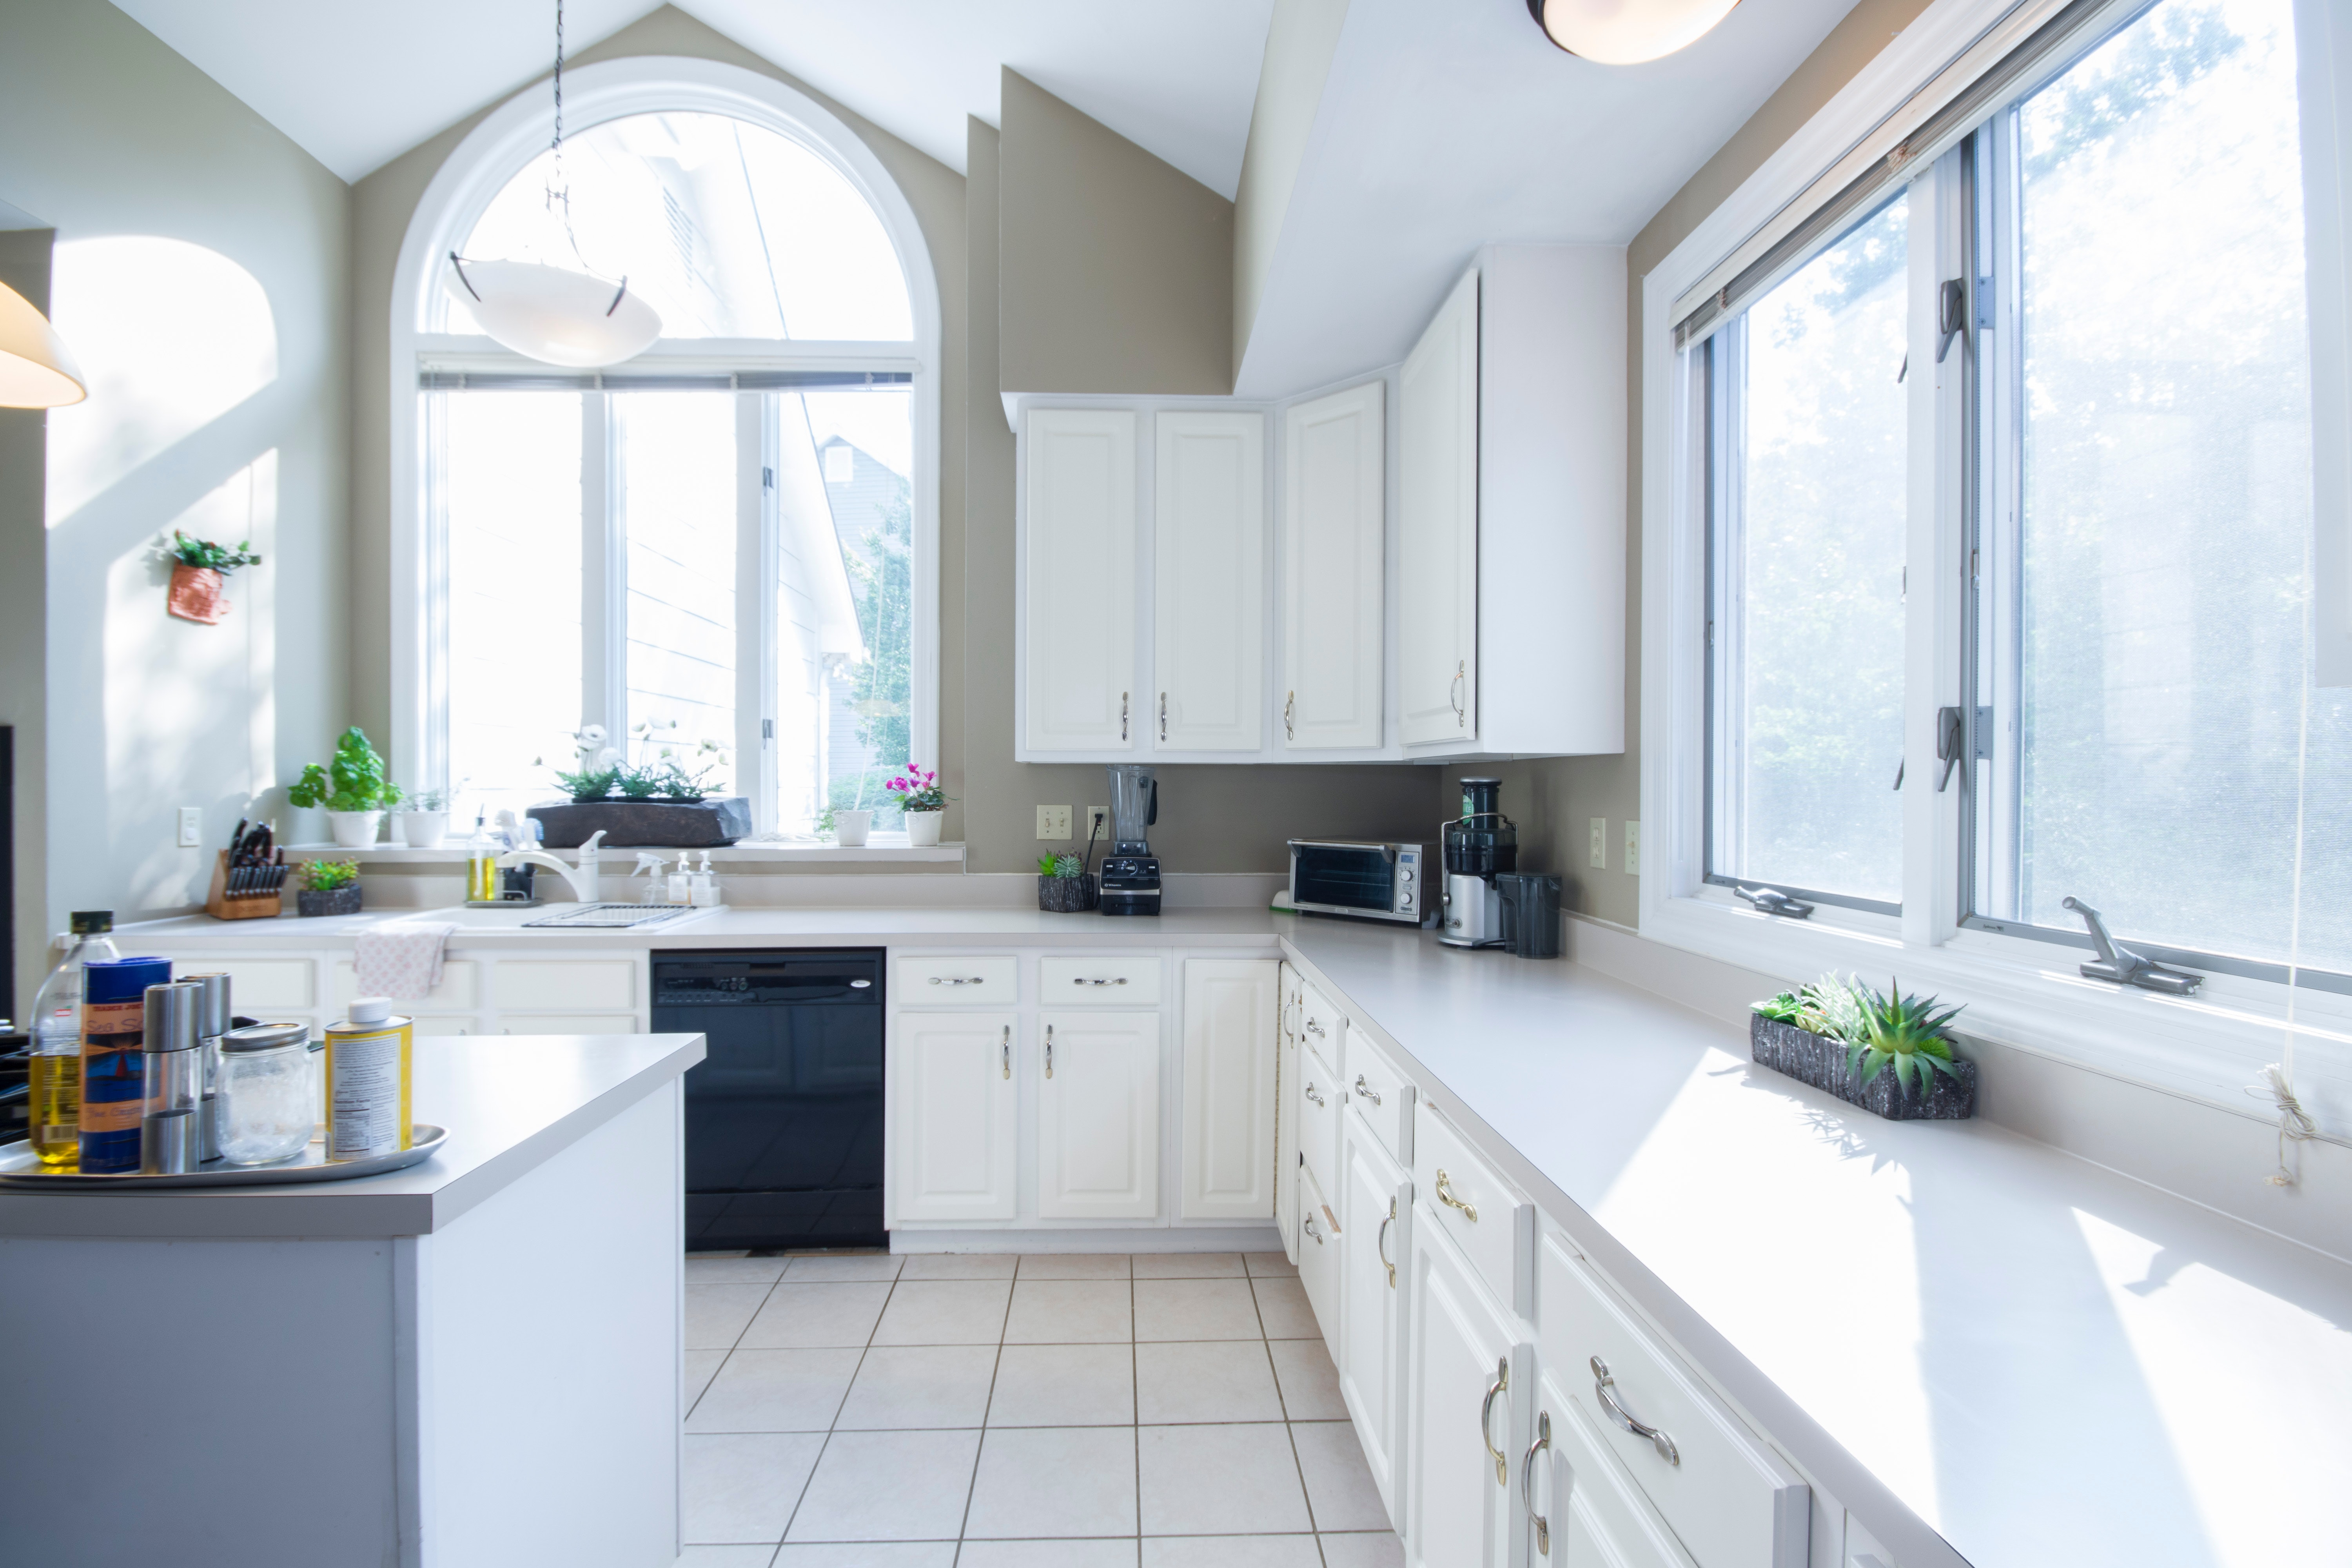 Professional Home Cleaning Services in Montreal